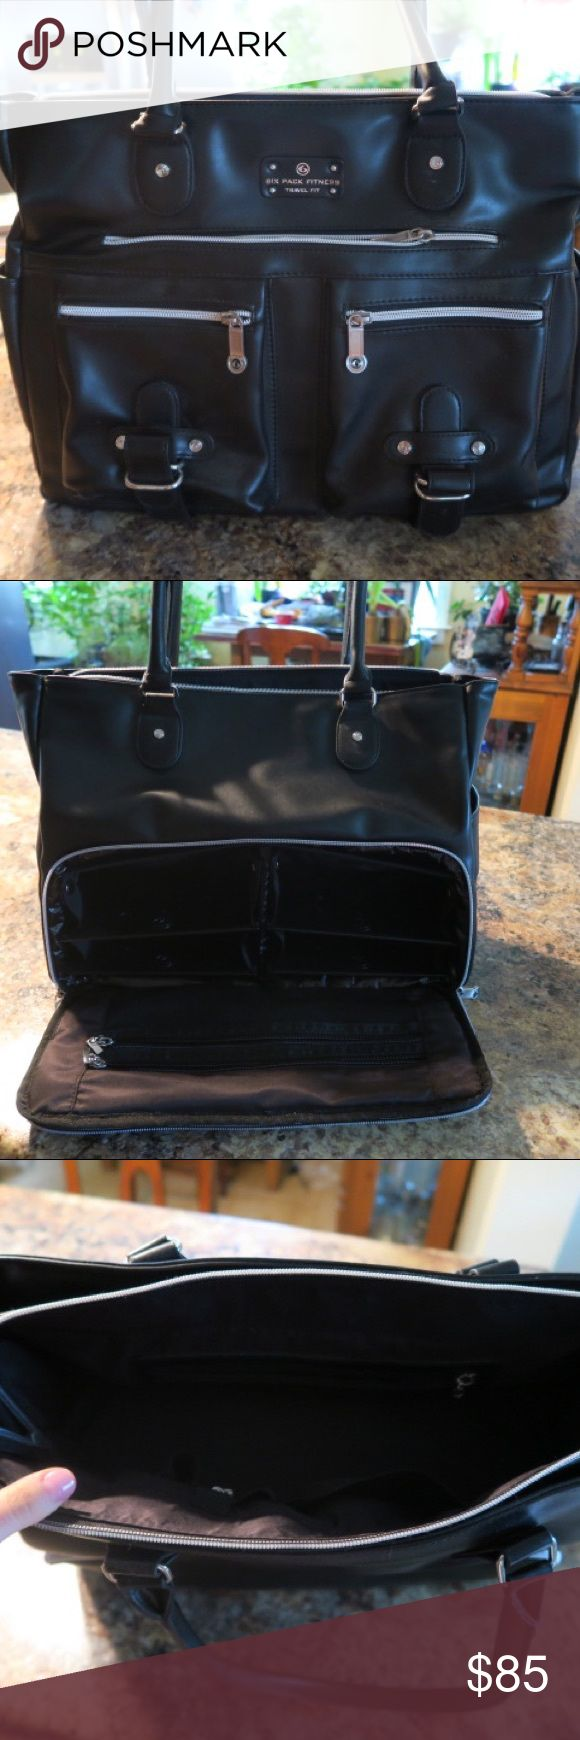 Six pack fitness travel kit - Black bag This expert Renee meal management tote is lightly used. I used the bag twice, I'm selling it because it's not my style. I'm only selling the bag the ice packs and containers are not included. You can fit any size containers in the bag though. 6 pack fitness Bags Totes